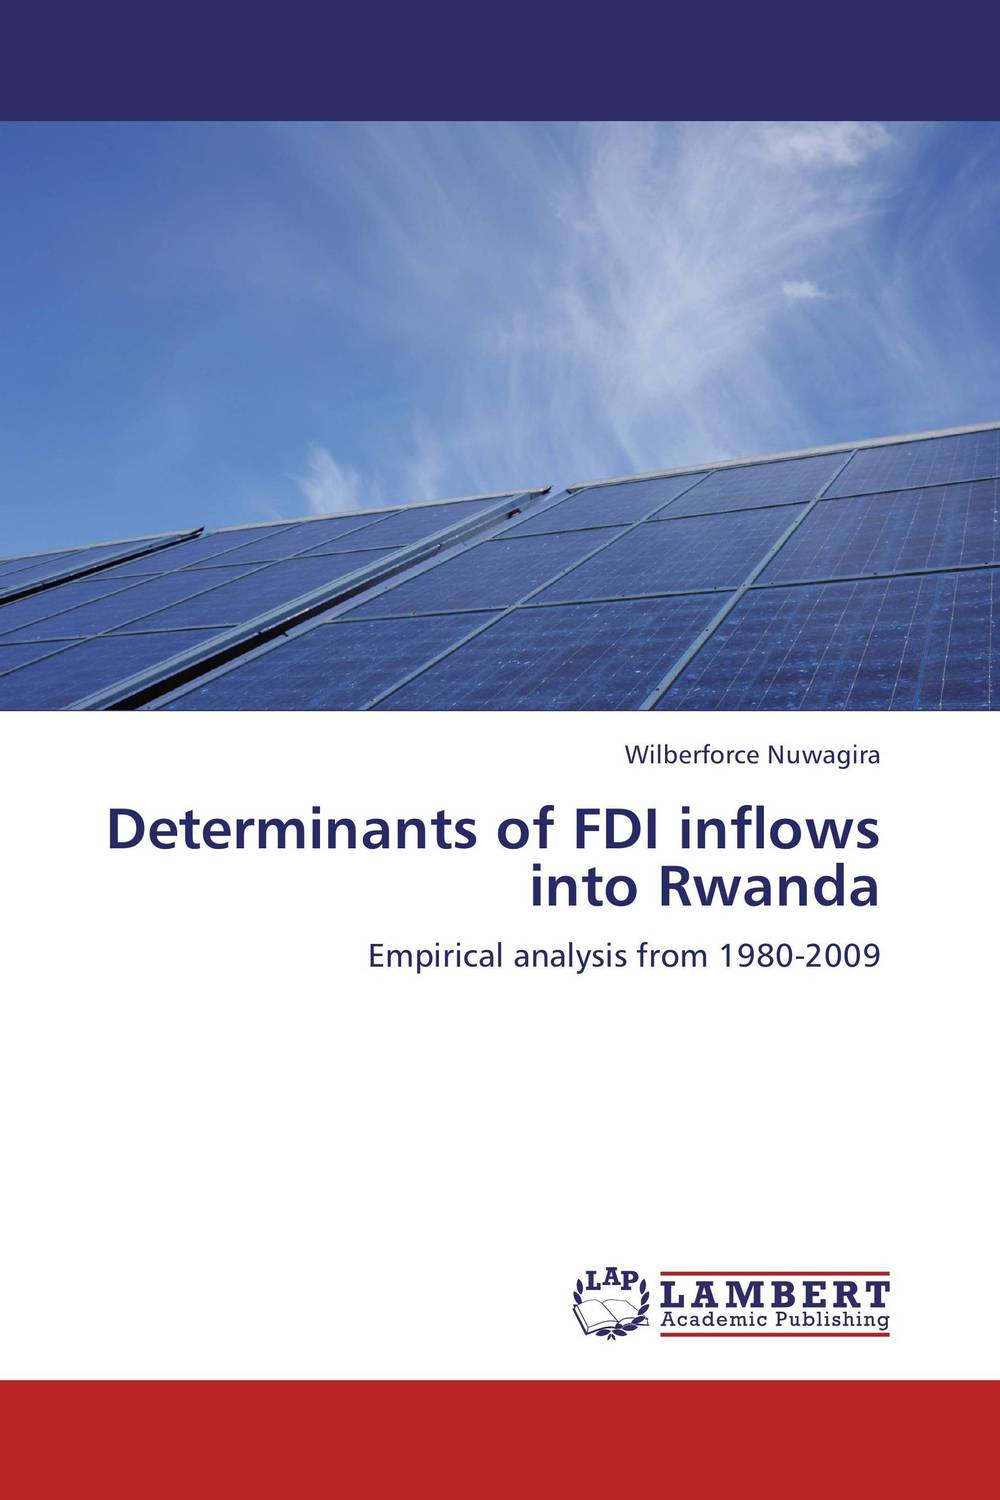 a description of the foreign direct investment fdi inflows have significant positive impacts on the